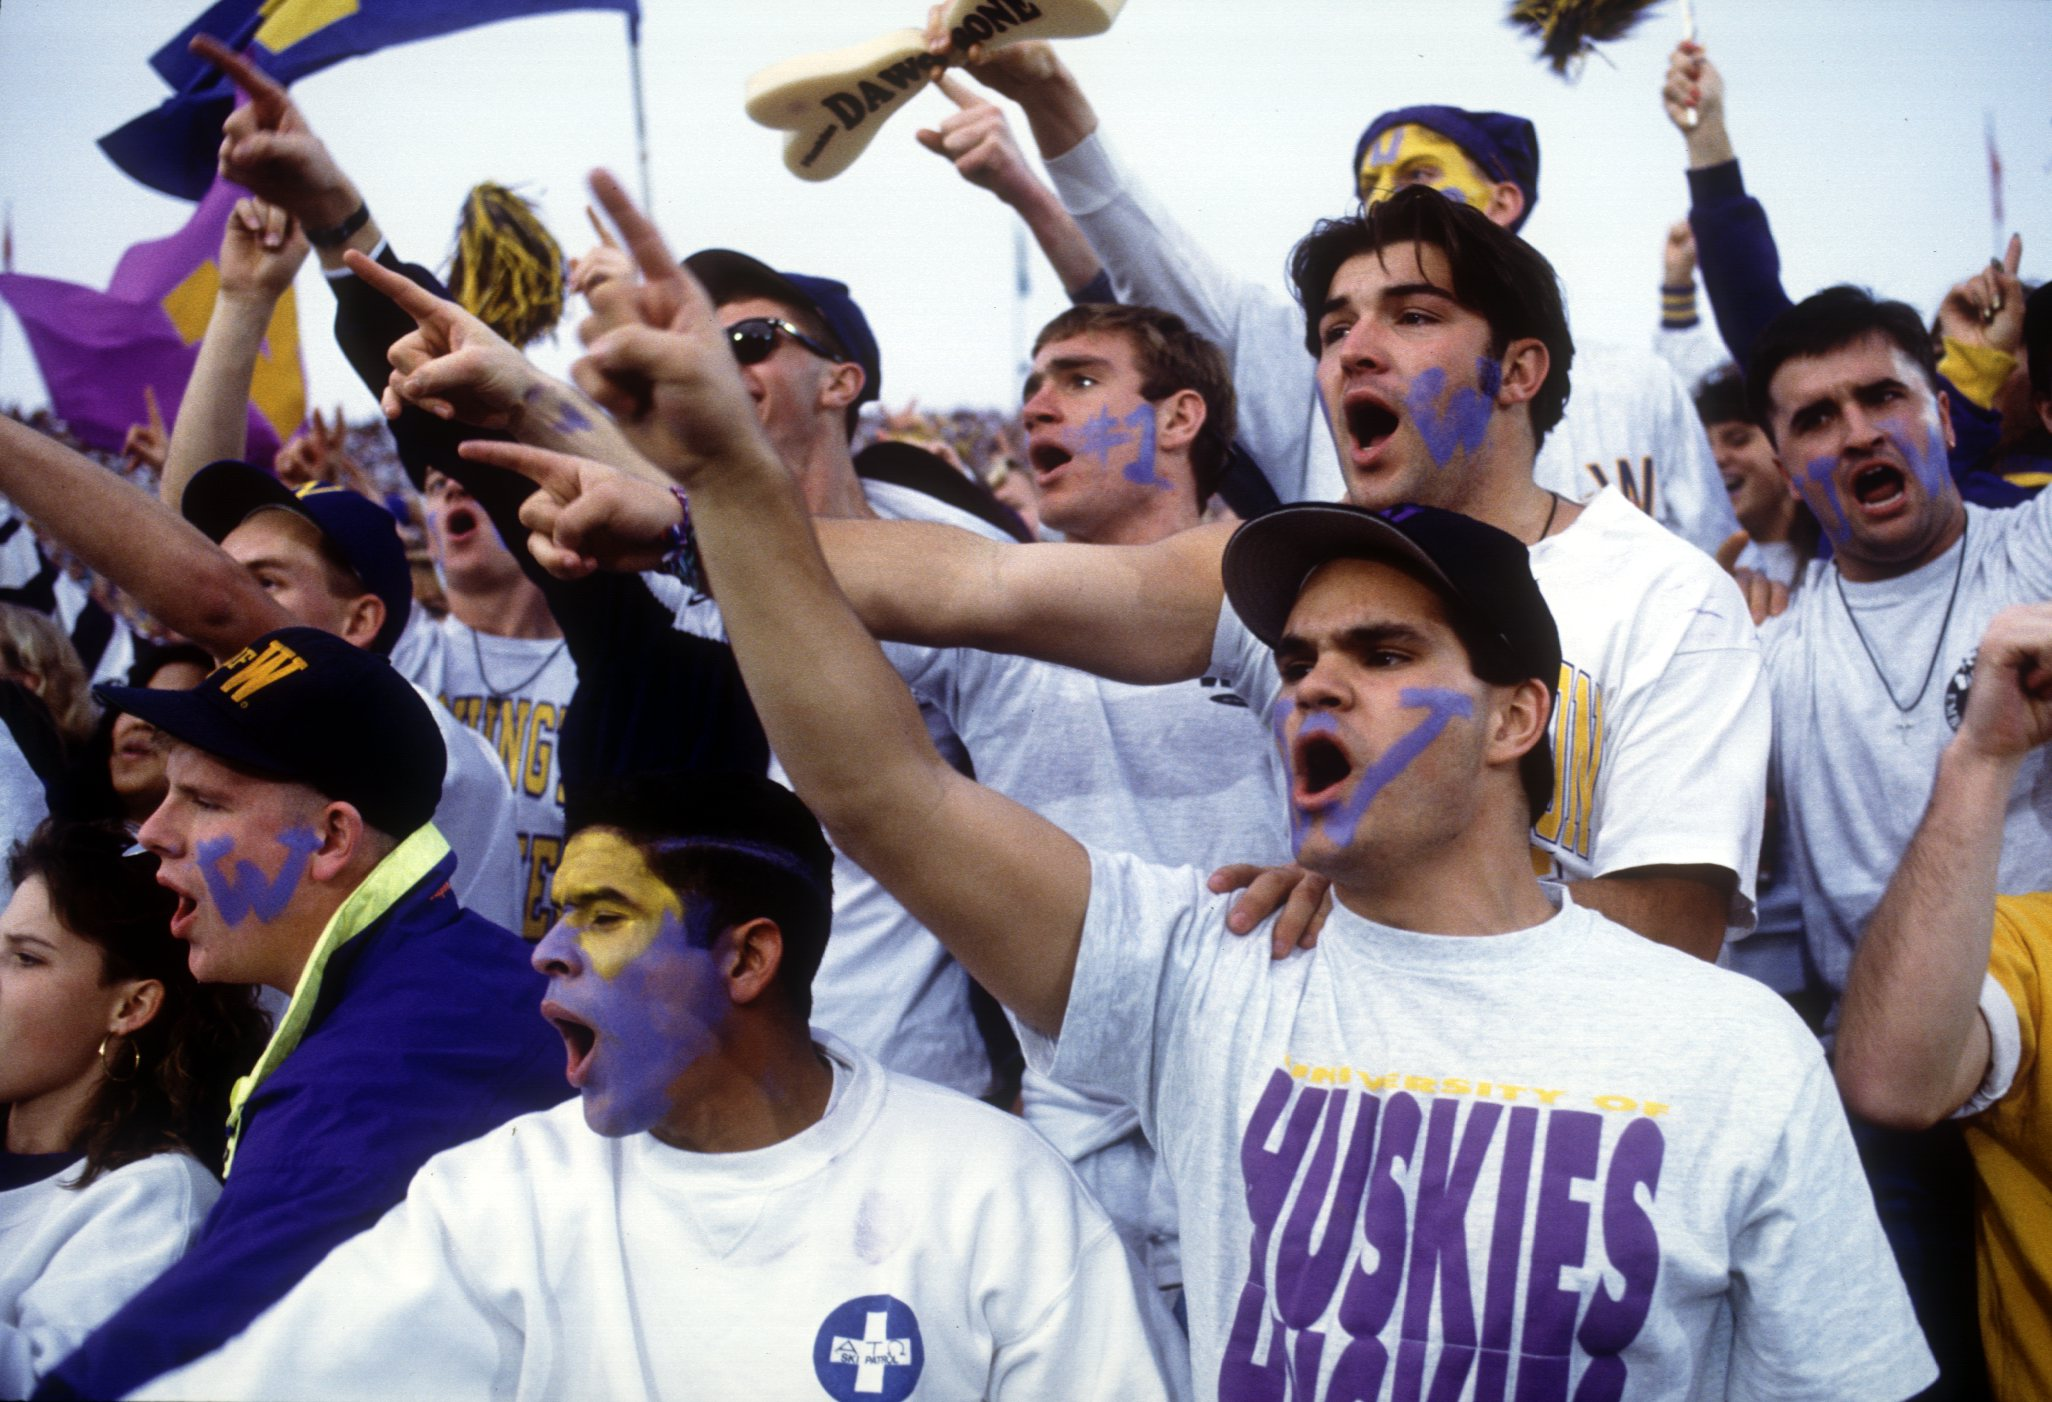 Washington University fans cheer on their team to a 34-14 victory over the University of Michigan in the 1992 Rose Bowl in Pasadena, CA. Mandatory Credit: Stephen Dunn/ALLSPORT